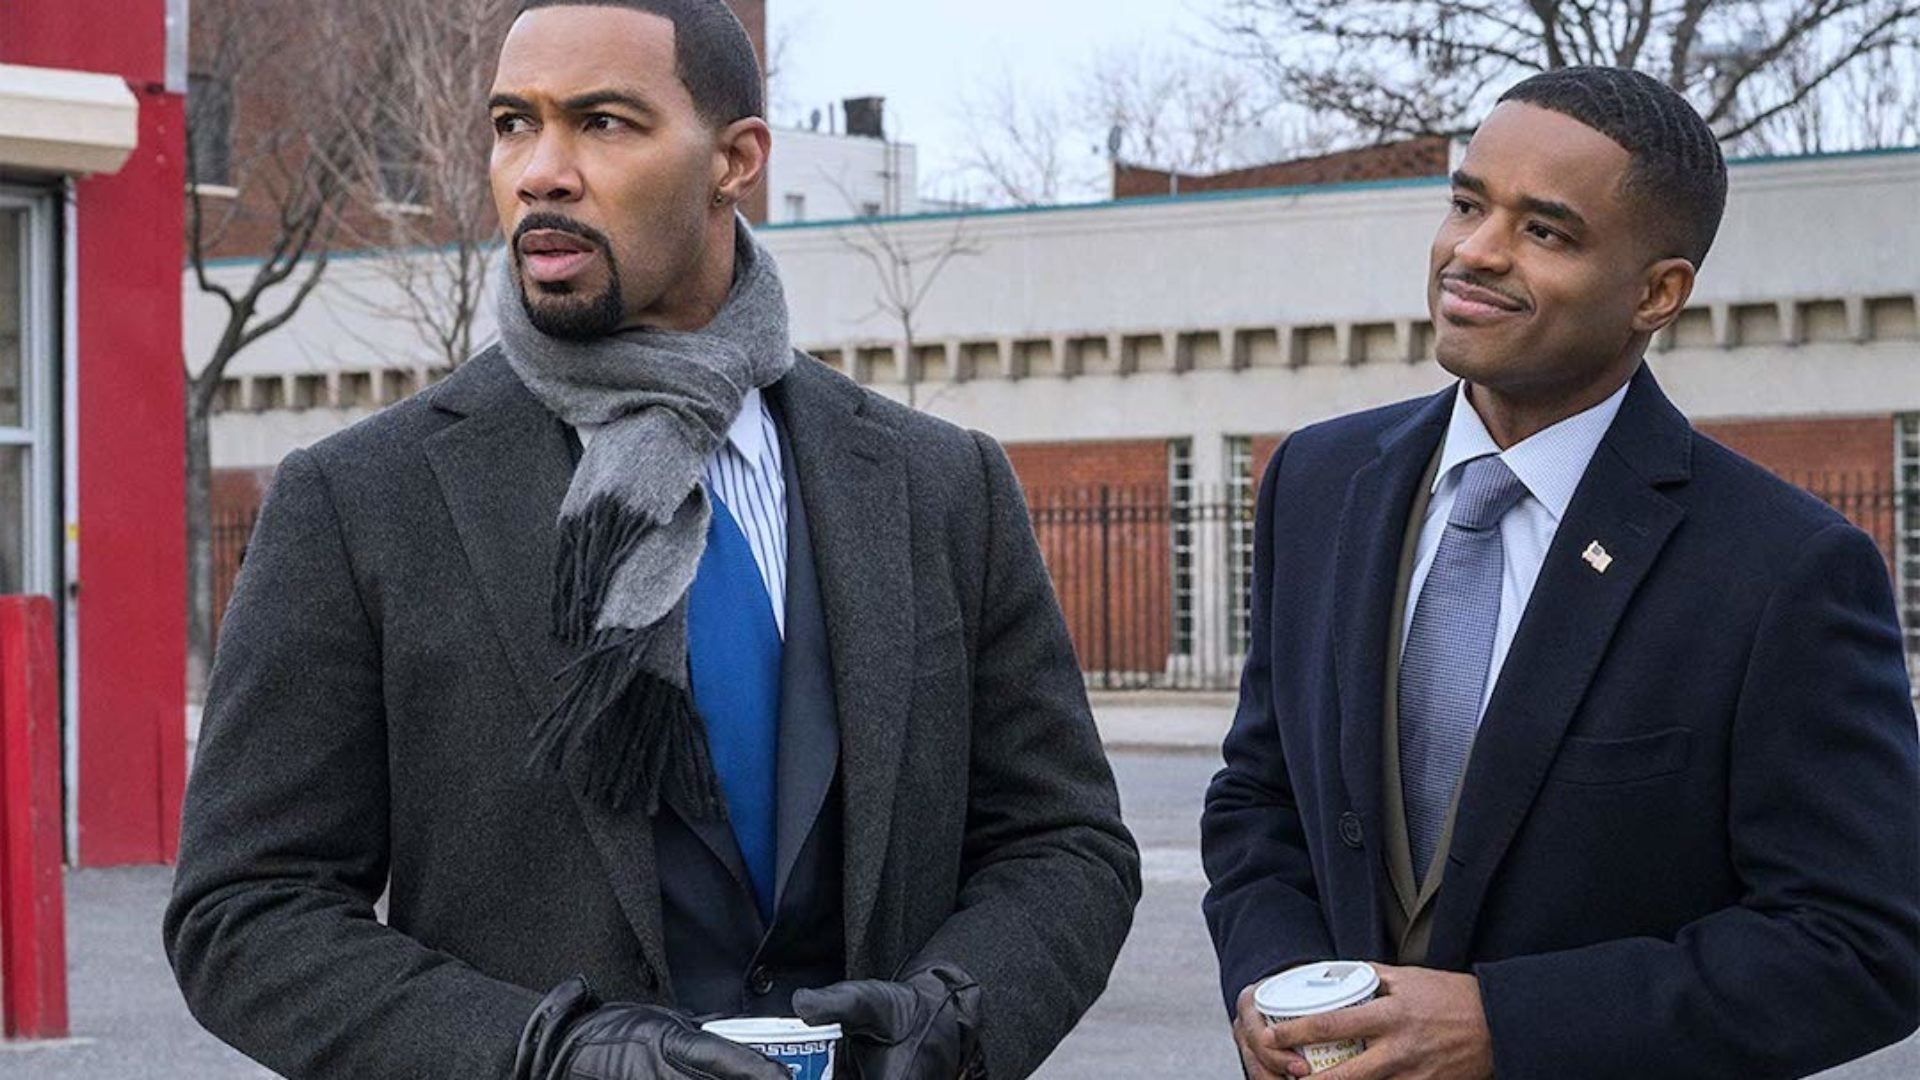 A New 'Power' Season 6 Trailer Is Here